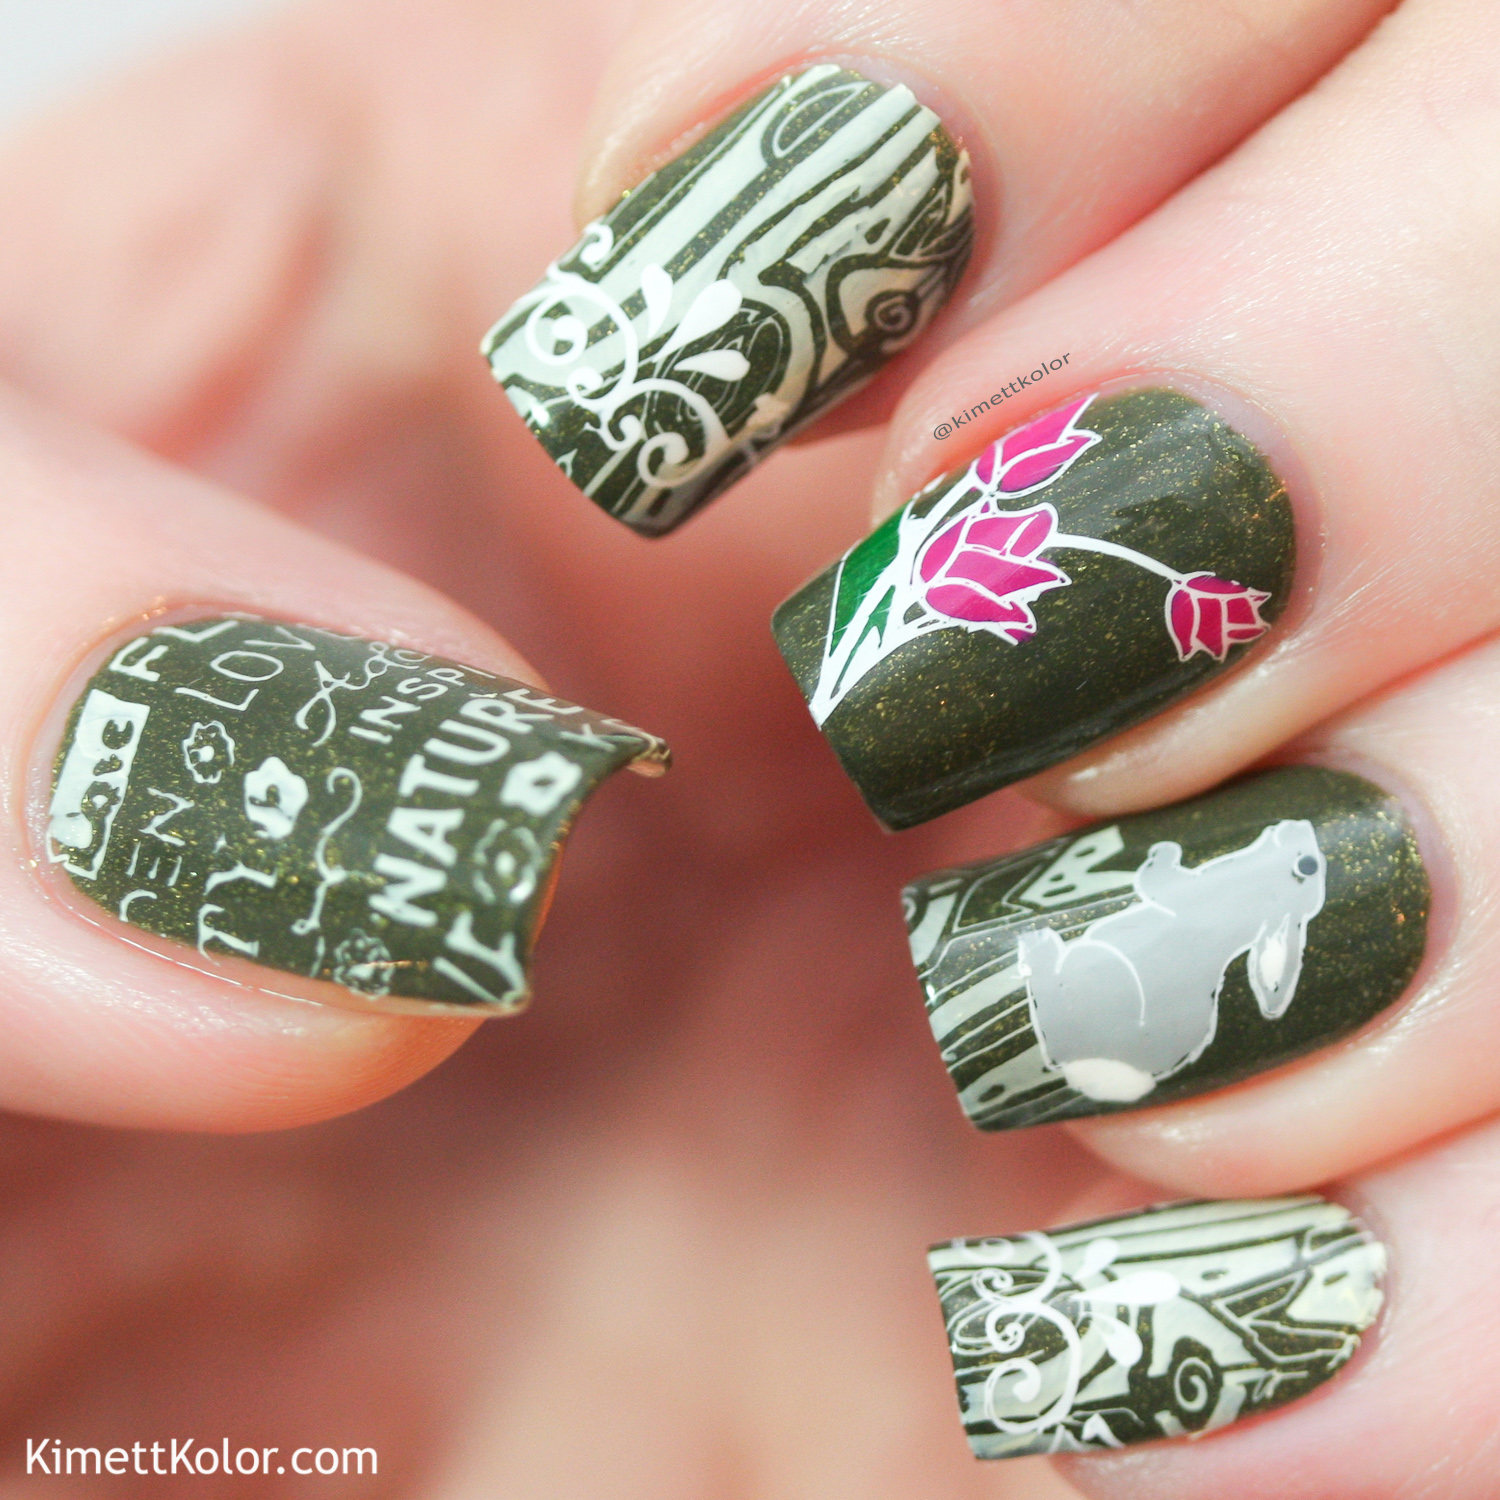 KimettKolor Nature Stamping Nail Art